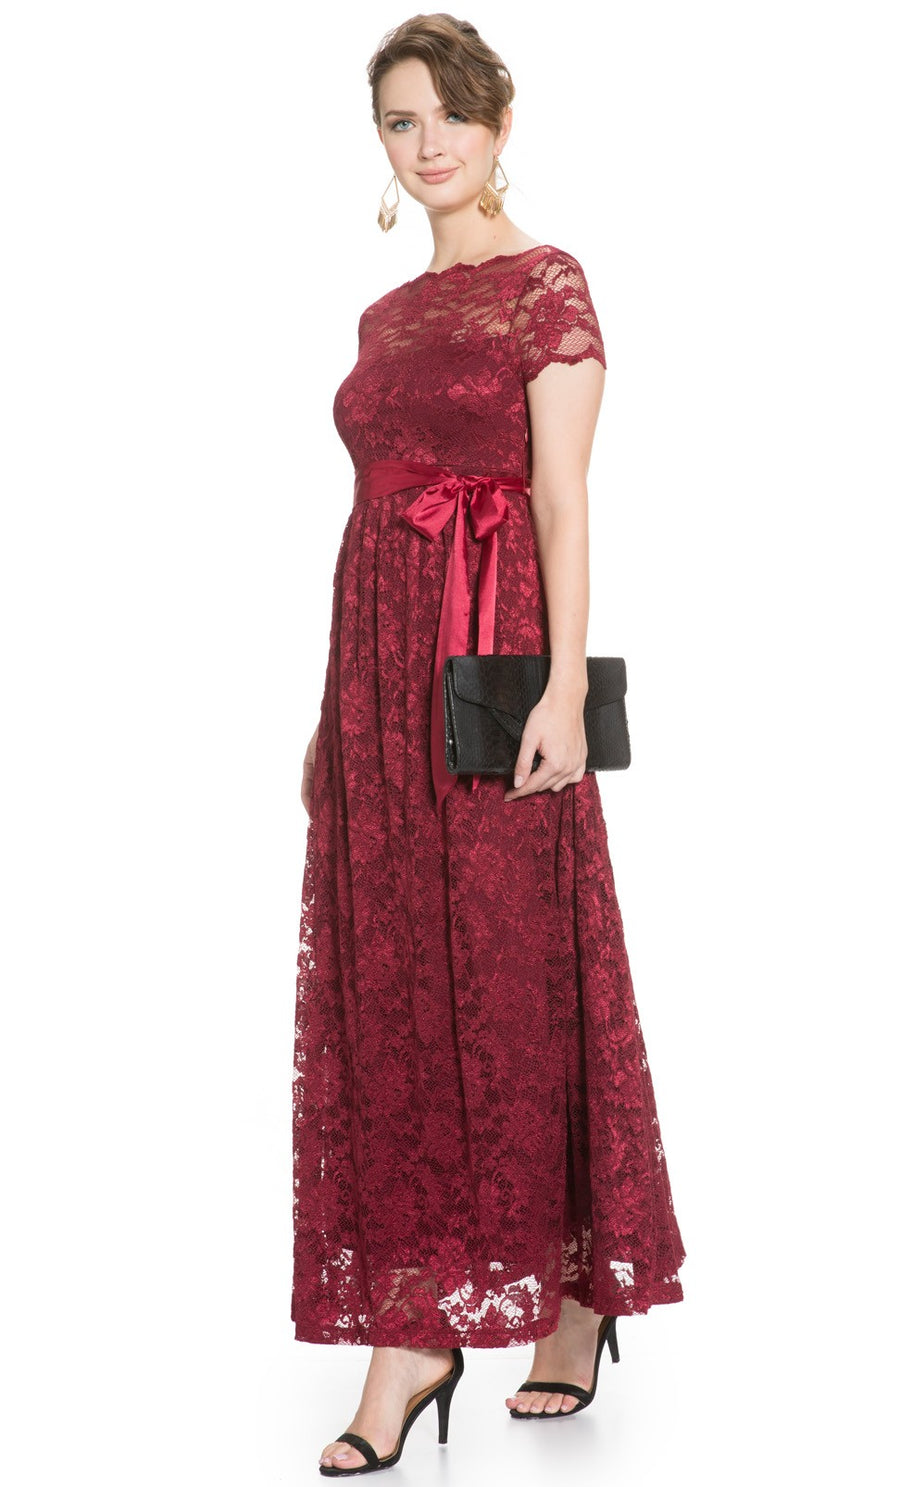 Mayarya Fuchsia Maternity Lace Gown in Wine